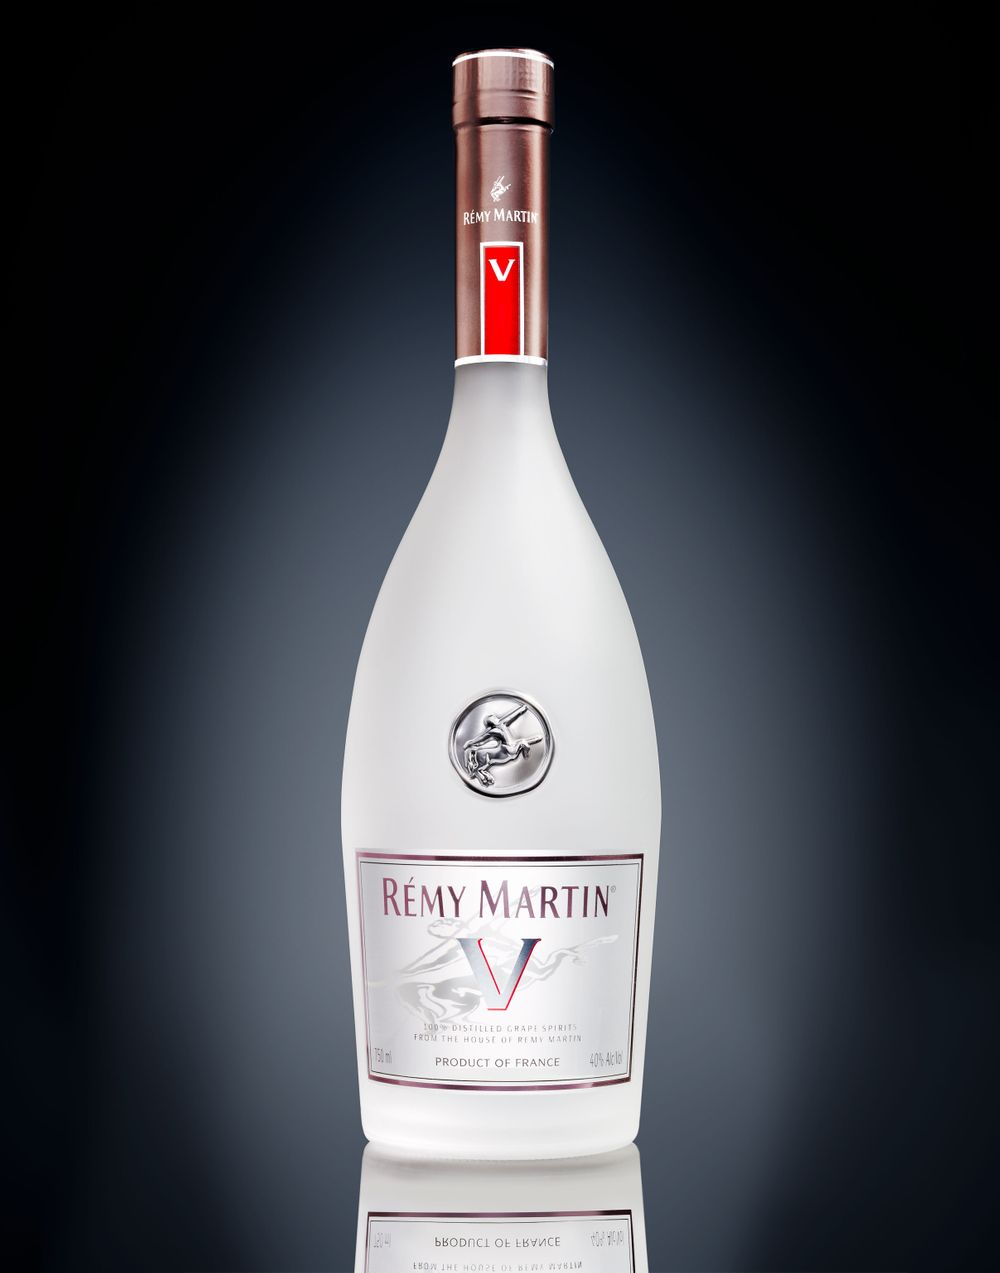 Remy Martin Advertising Campaign